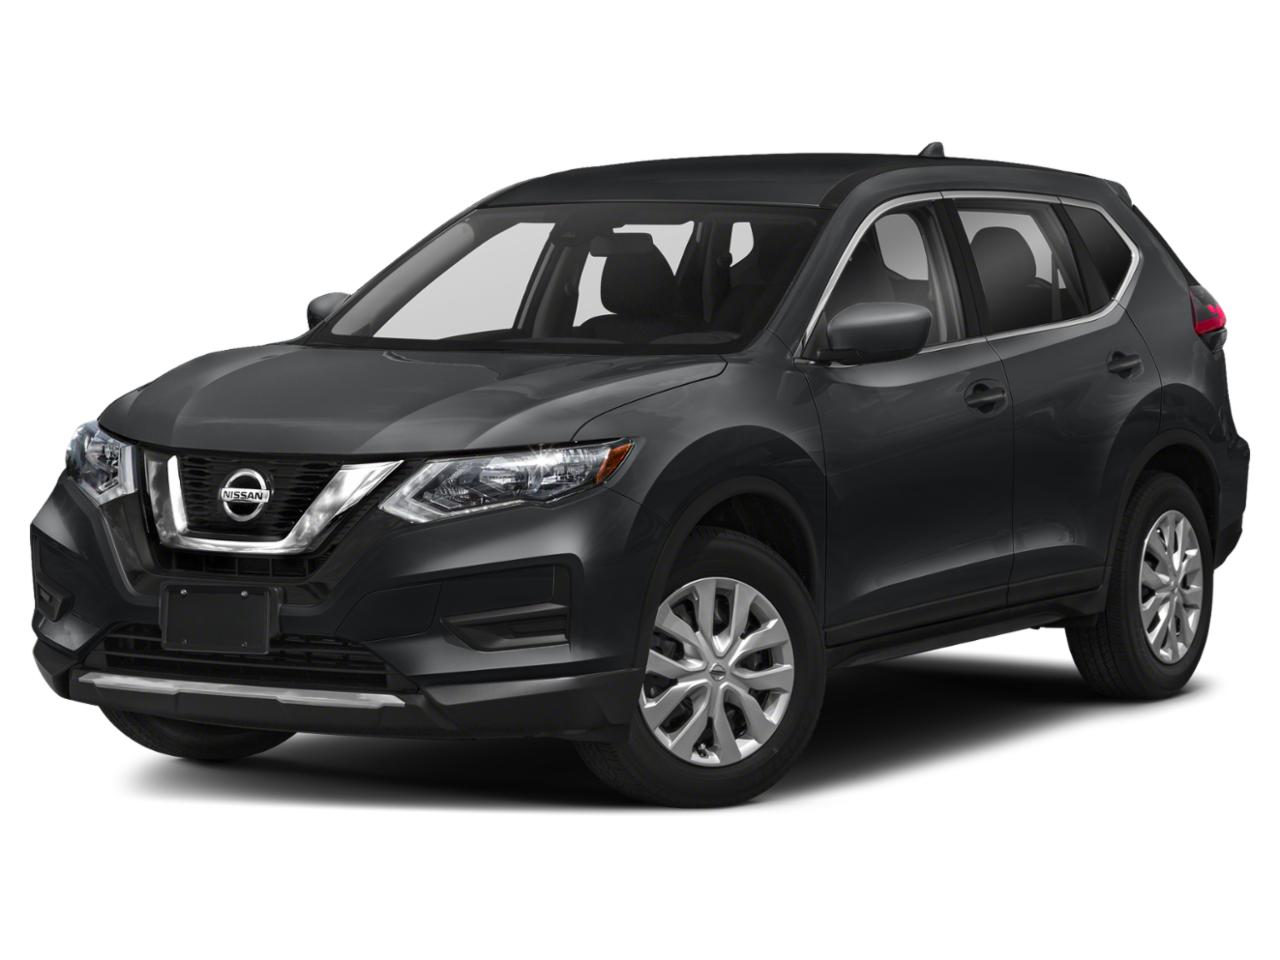 2020 Nissan Rogue Vehicle Photo in TEMPLE, TX 76504-3447